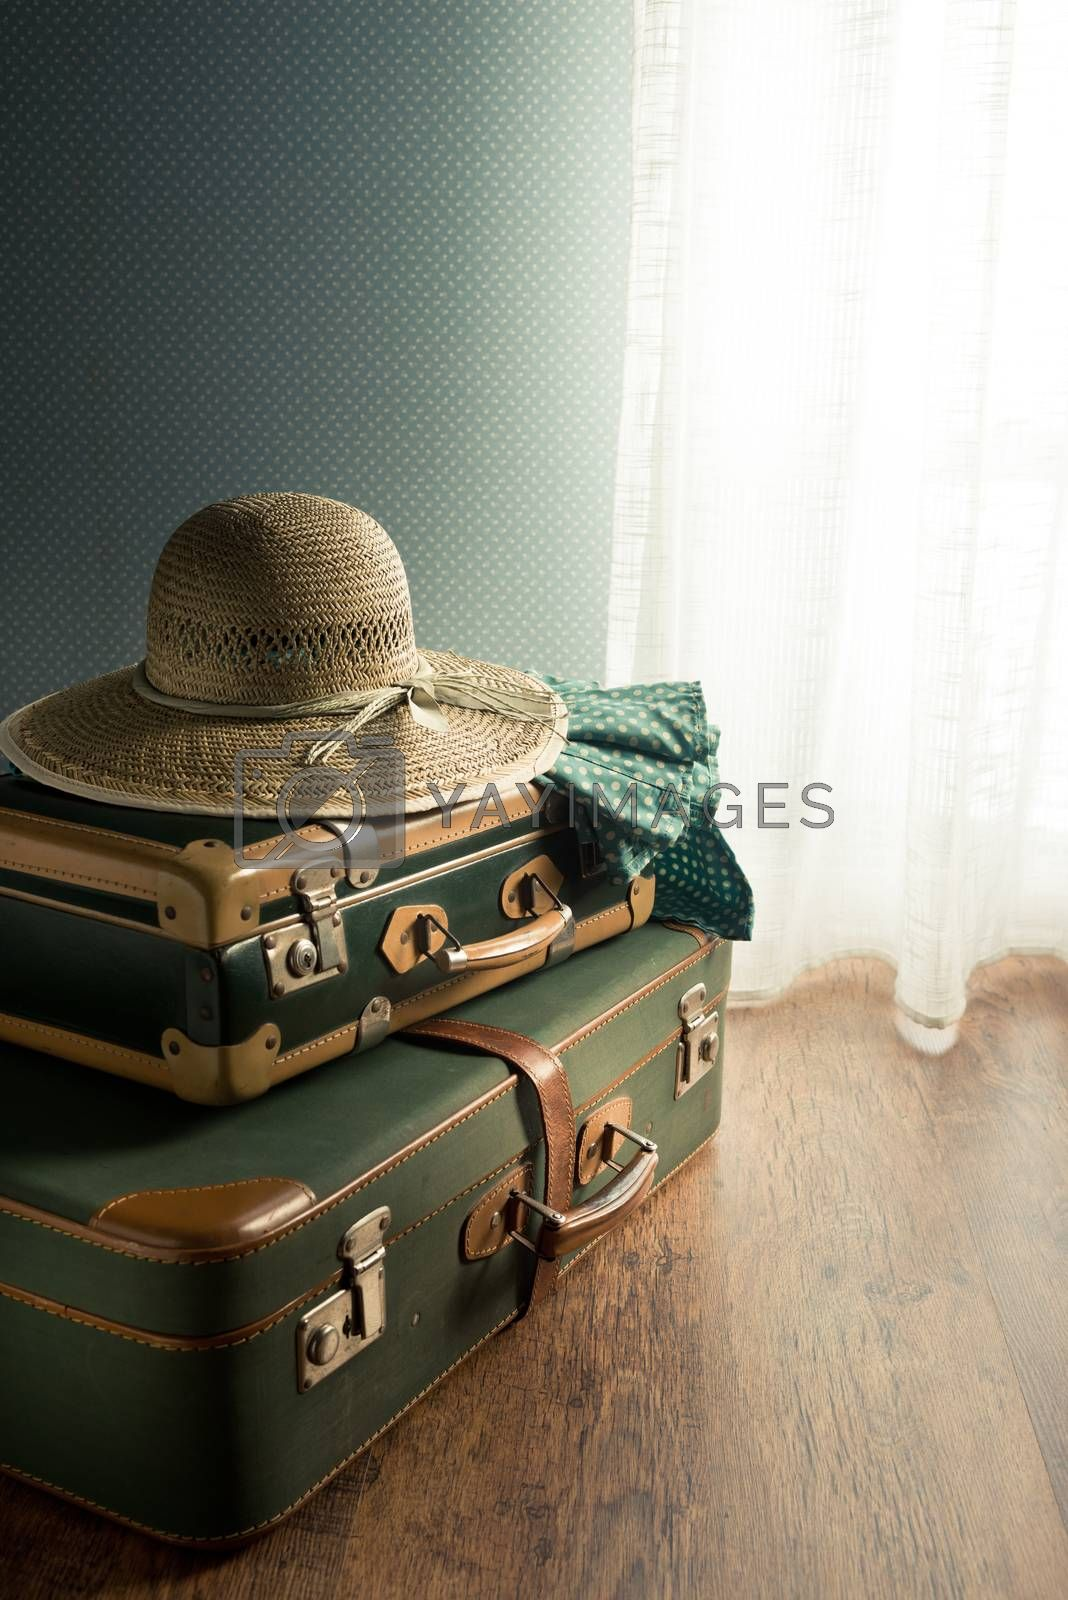 Vintage suitcase with straw hat on the floor next to a window.